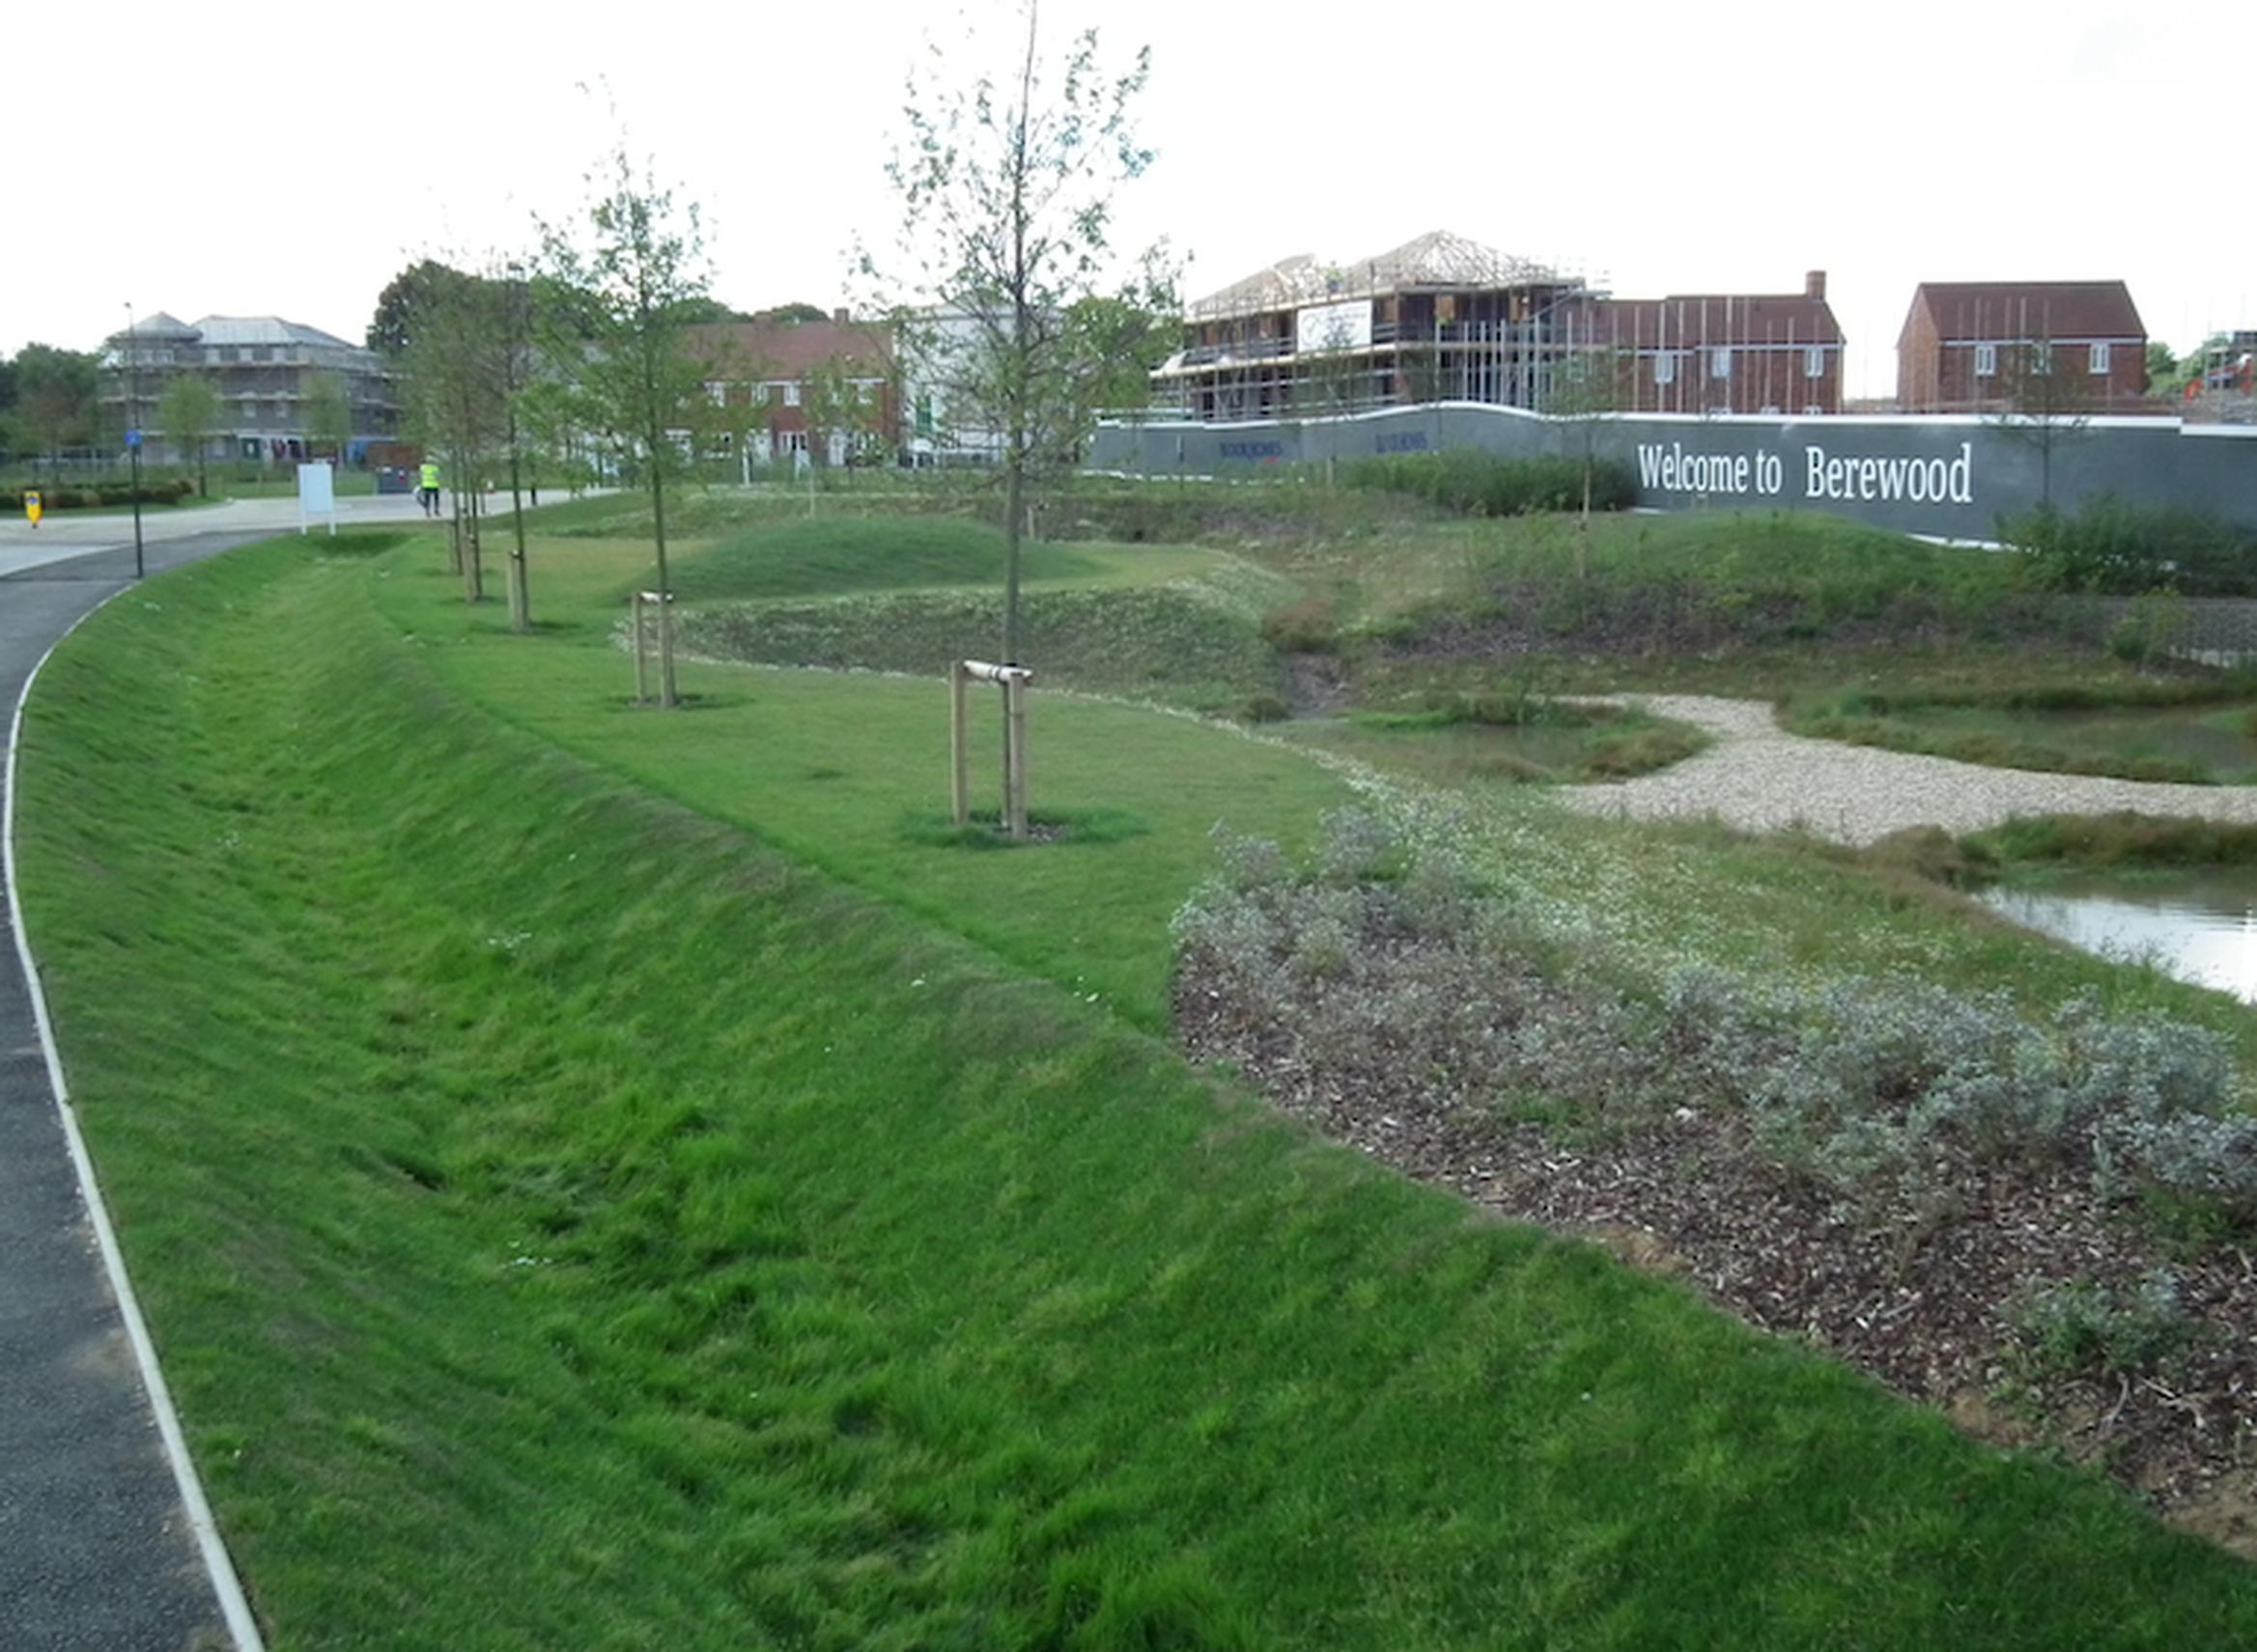 British Water publishes code of practice for assessing sustainable drainage systems